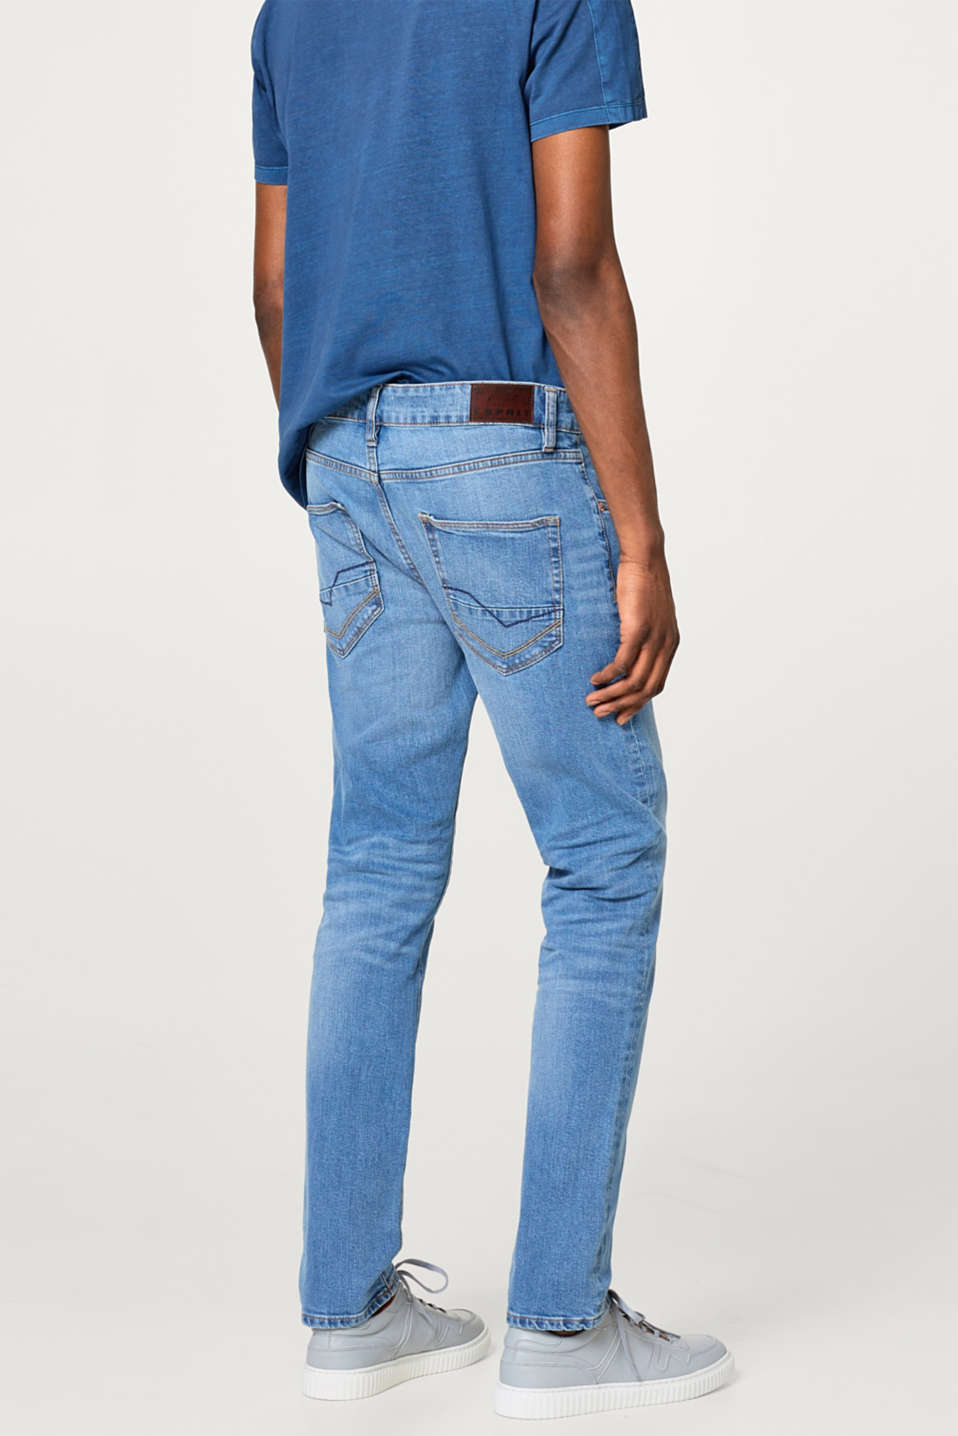 Bright stretch jeans in a light wash